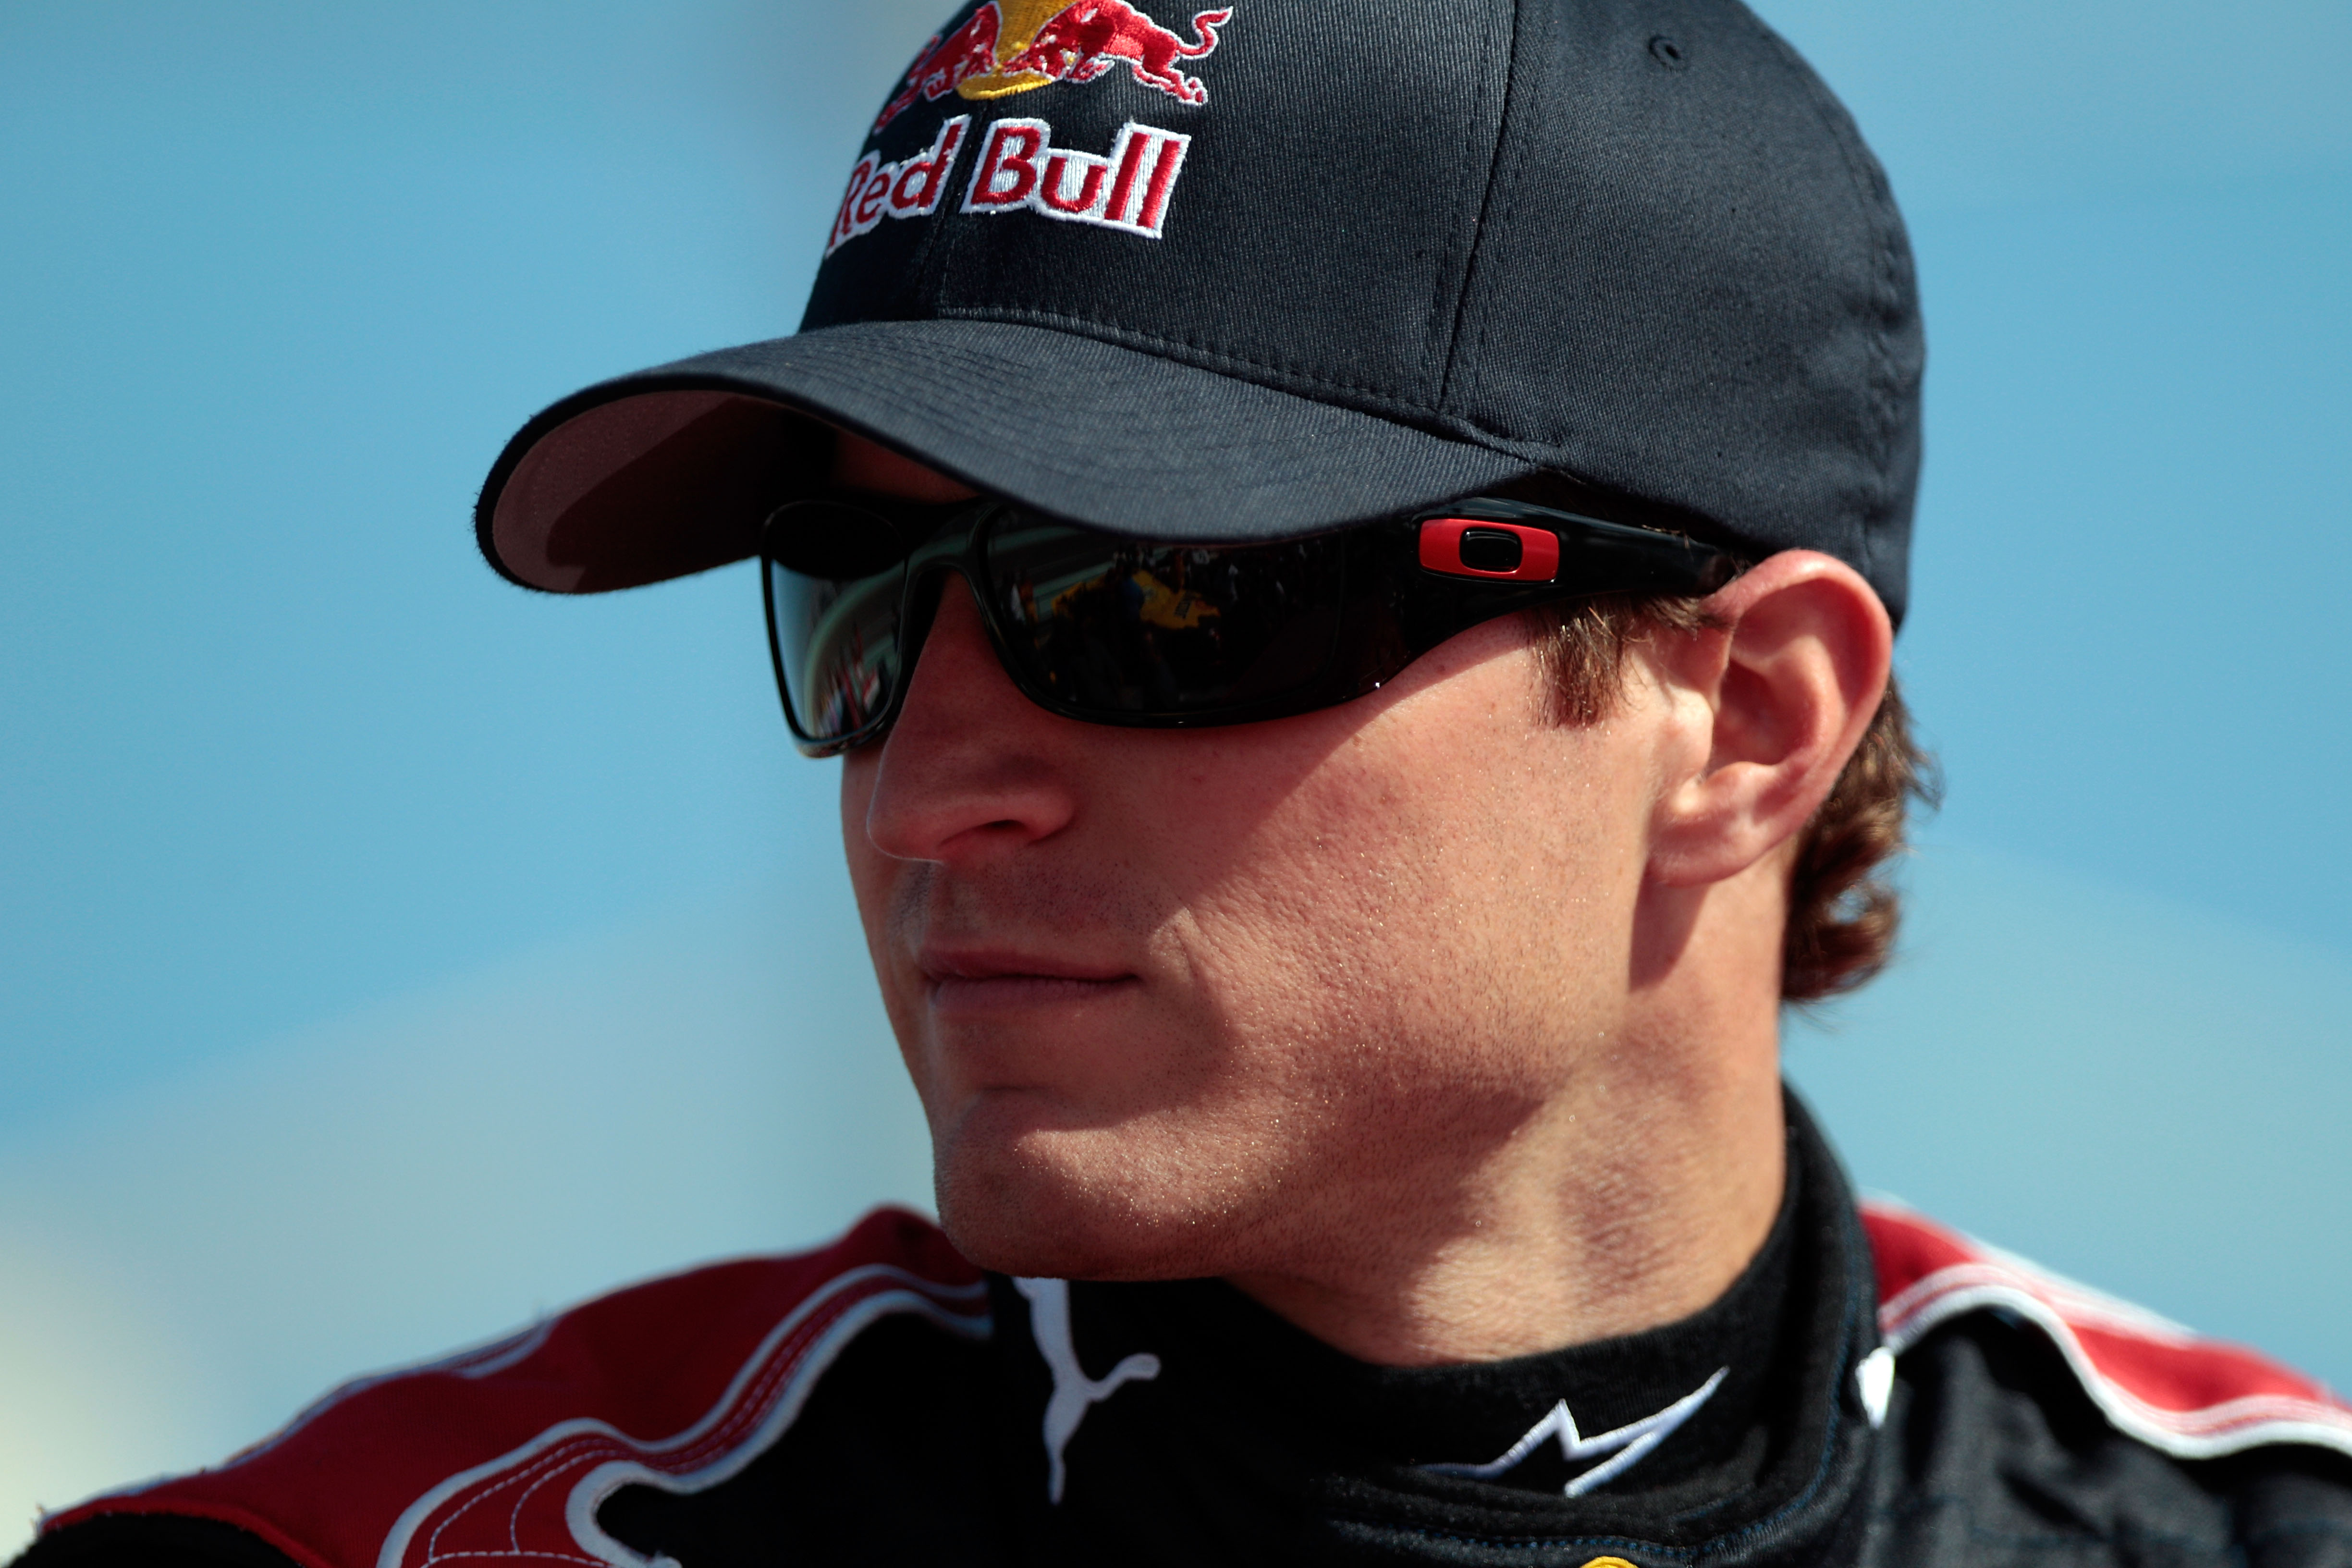 HOMESTEAD, FL - NOVEMBER 21:  Kasey Kahne, driver of the #83 Red Bull Toyota, looks on prior to the NASCAR Sprint Cup Series Ford 400 at Homestead-Miami Speedway on November 21, 2010 in Homestead, Florida.  (Photo by Chris Graythen/Getty Images)